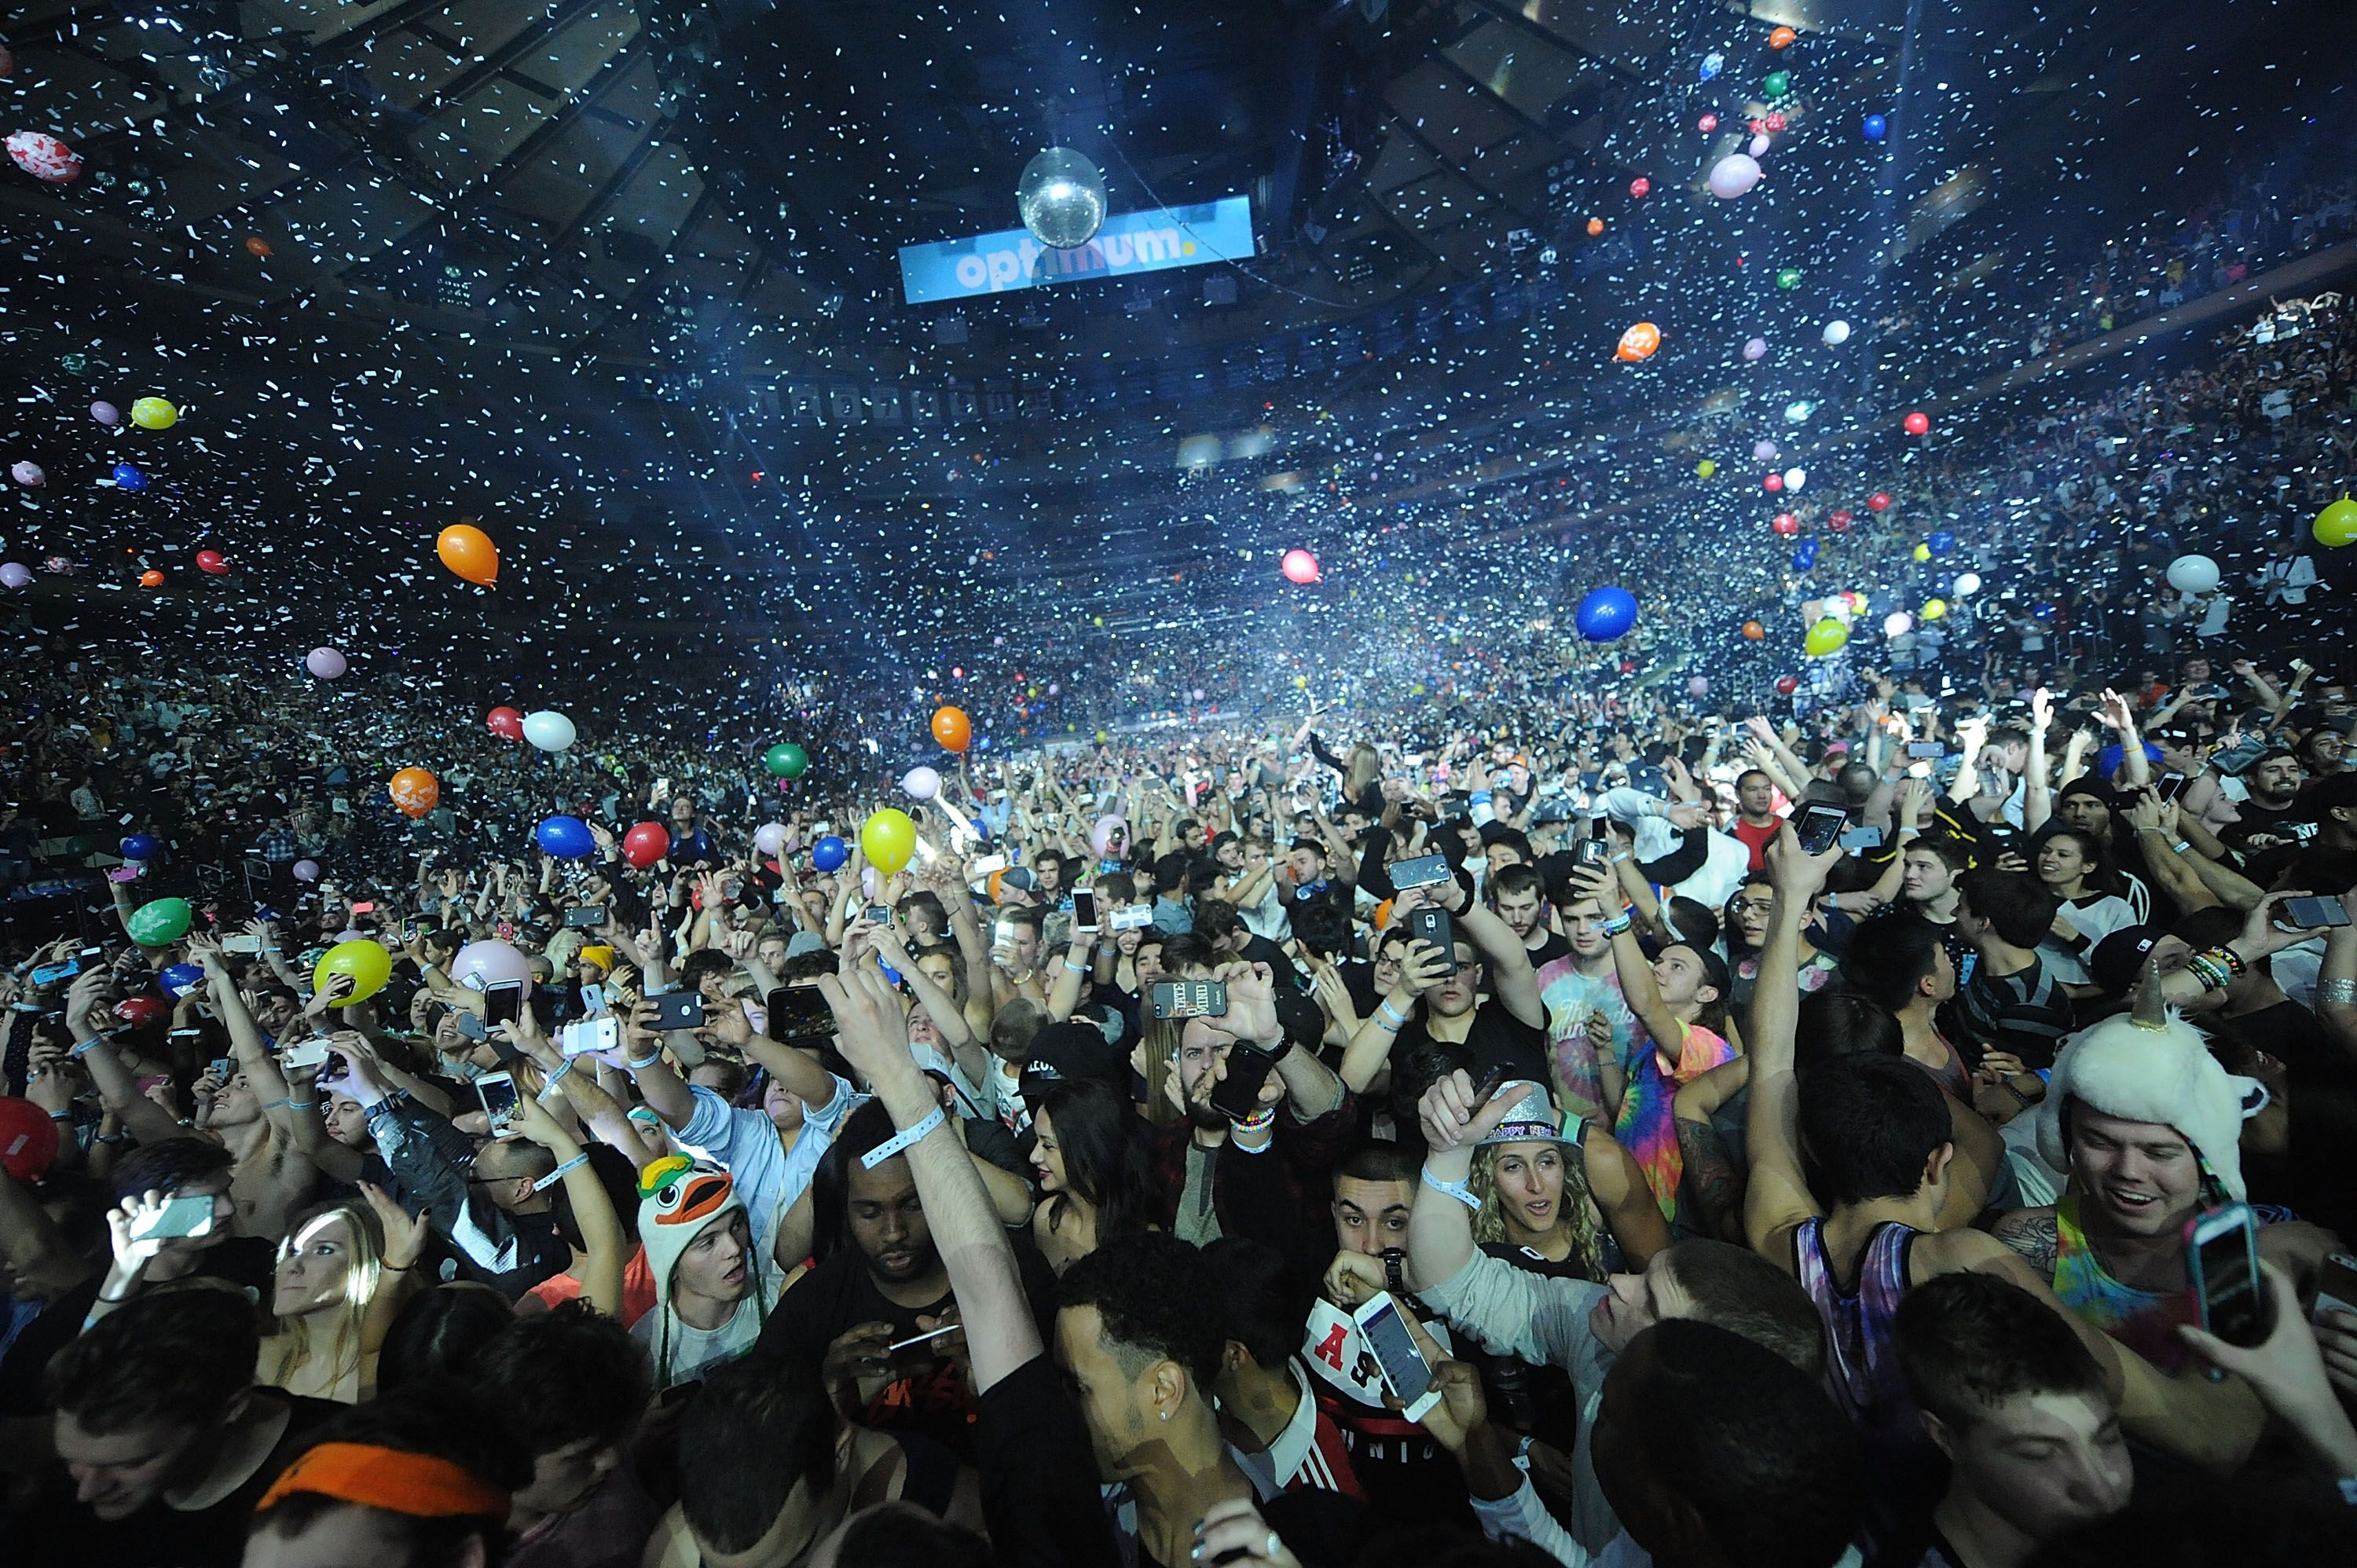 Skrillex + Diplo In Concert - Concert goers celebrate the New Year at Madison Square Garden